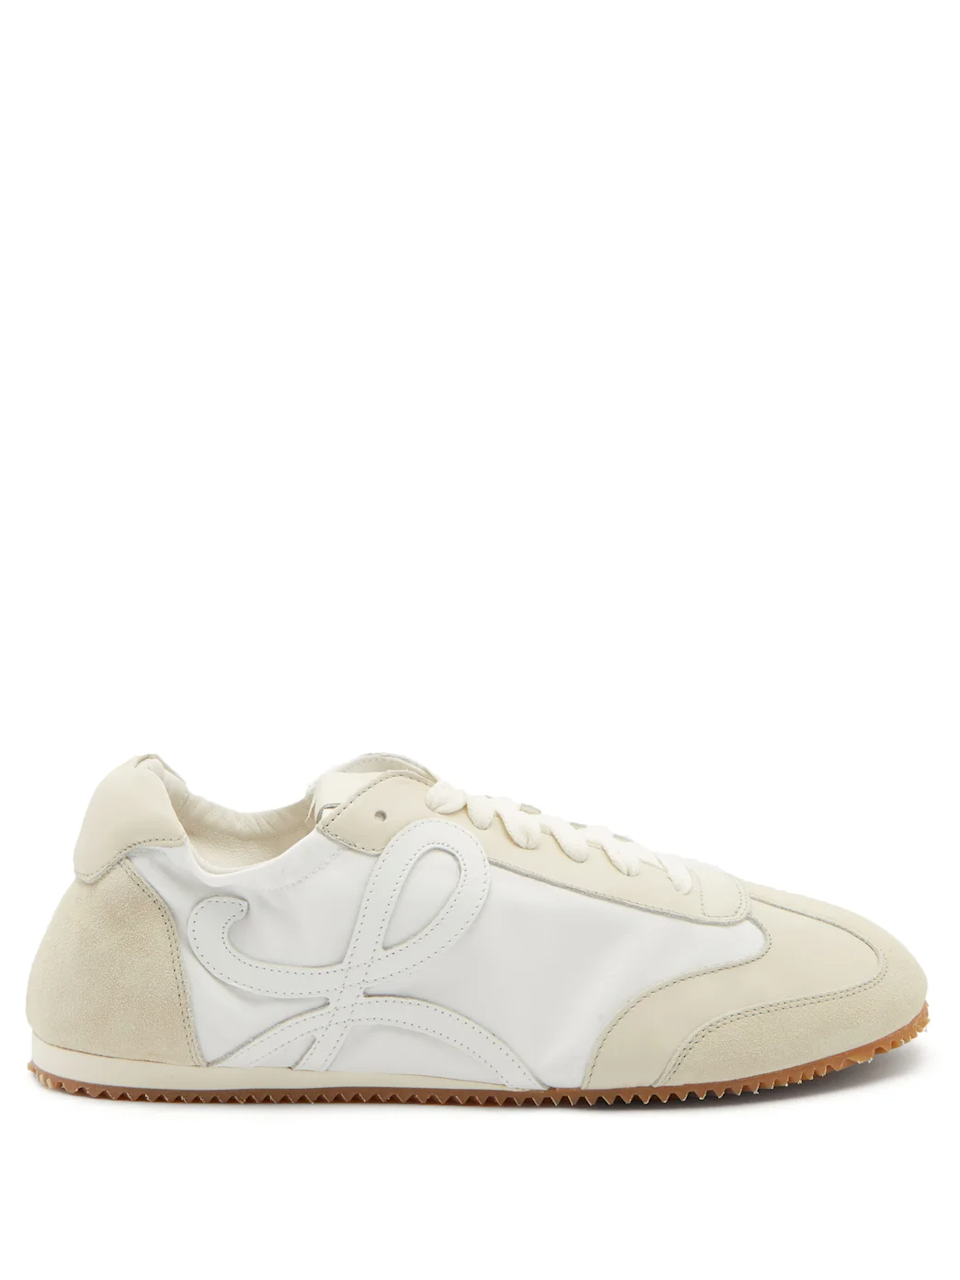 """<br><br><strong>Loewe</strong> Ballet Runner Leather And Suede Trainers, $, available at <a href=""""https://go.skimresources.com/?id=30283X879131&url=https%3A%2F%2Fwww.matchesfashion.com%2Fus%2Fproducts%2FLoewe-Ballet-Runner-leather-and-suede-trainers%2509-1359029"""" rel=""""nofollow noopener"""" target=""""_blank"""" data-ylk=""""slk:Matches Fashion"""" class=""""link rapid-noclick-resp"""">Matches Fashion</a>"""